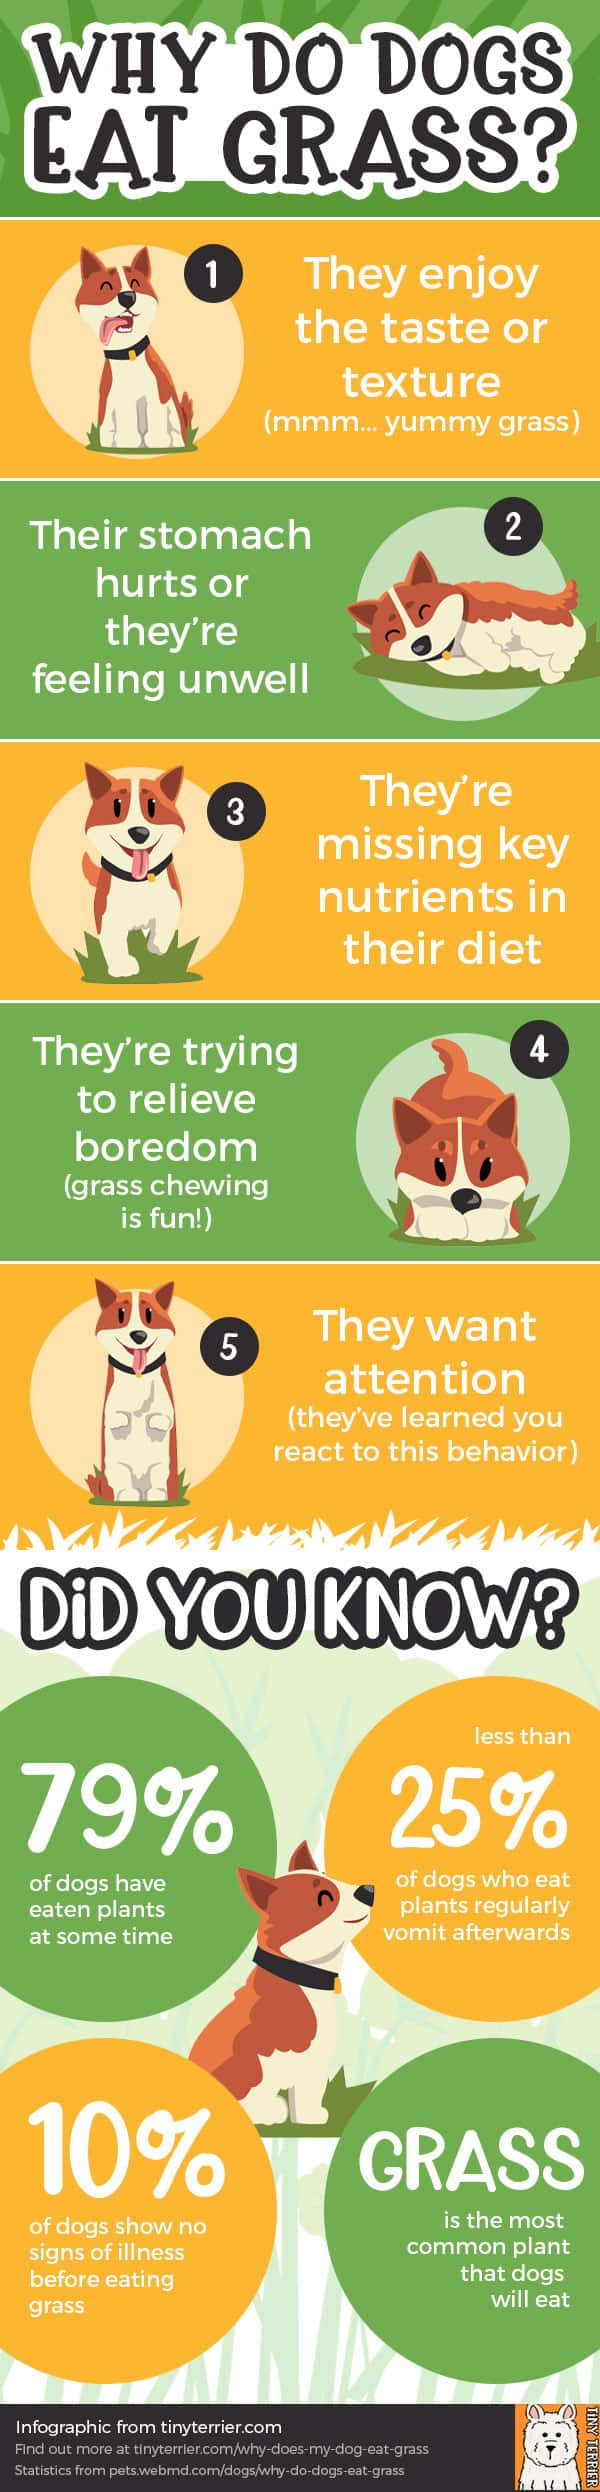 An infographic on why dogs eat grass and statistics about dogs eating grass.